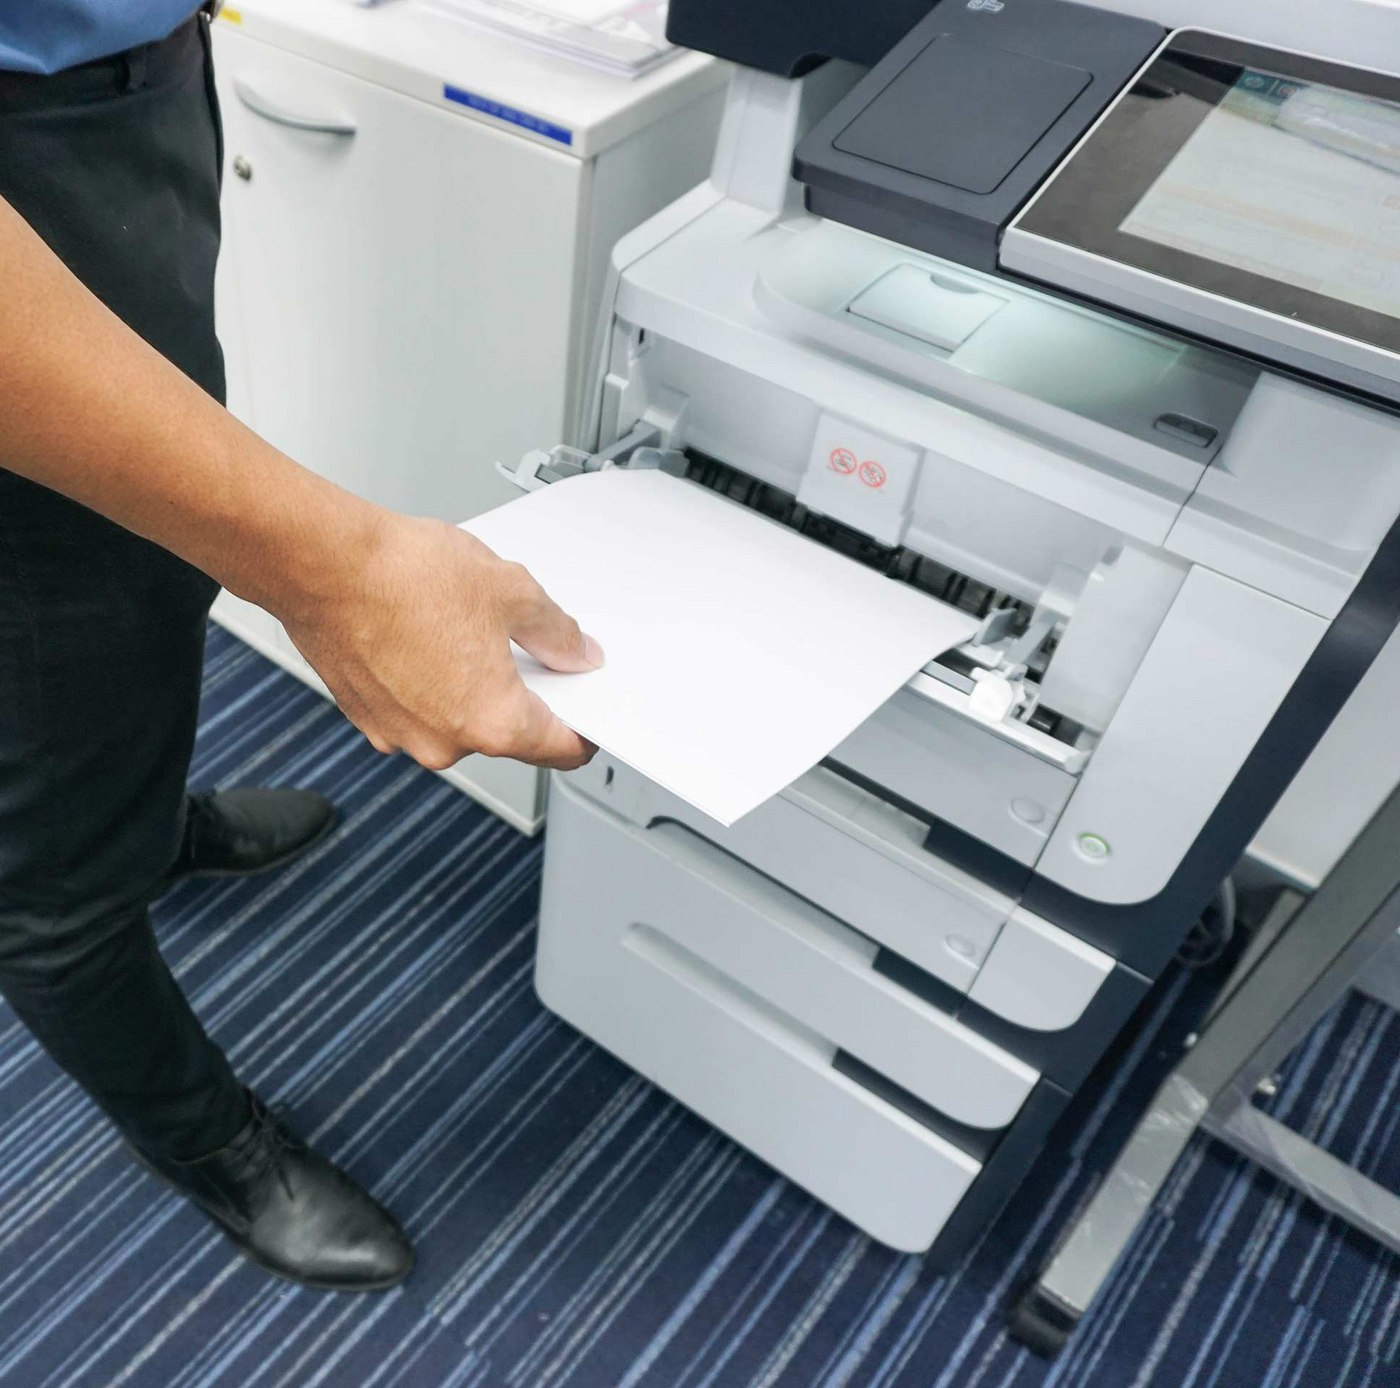 Multifunction Printers do more than print - they also copy, scan, fax, and more.